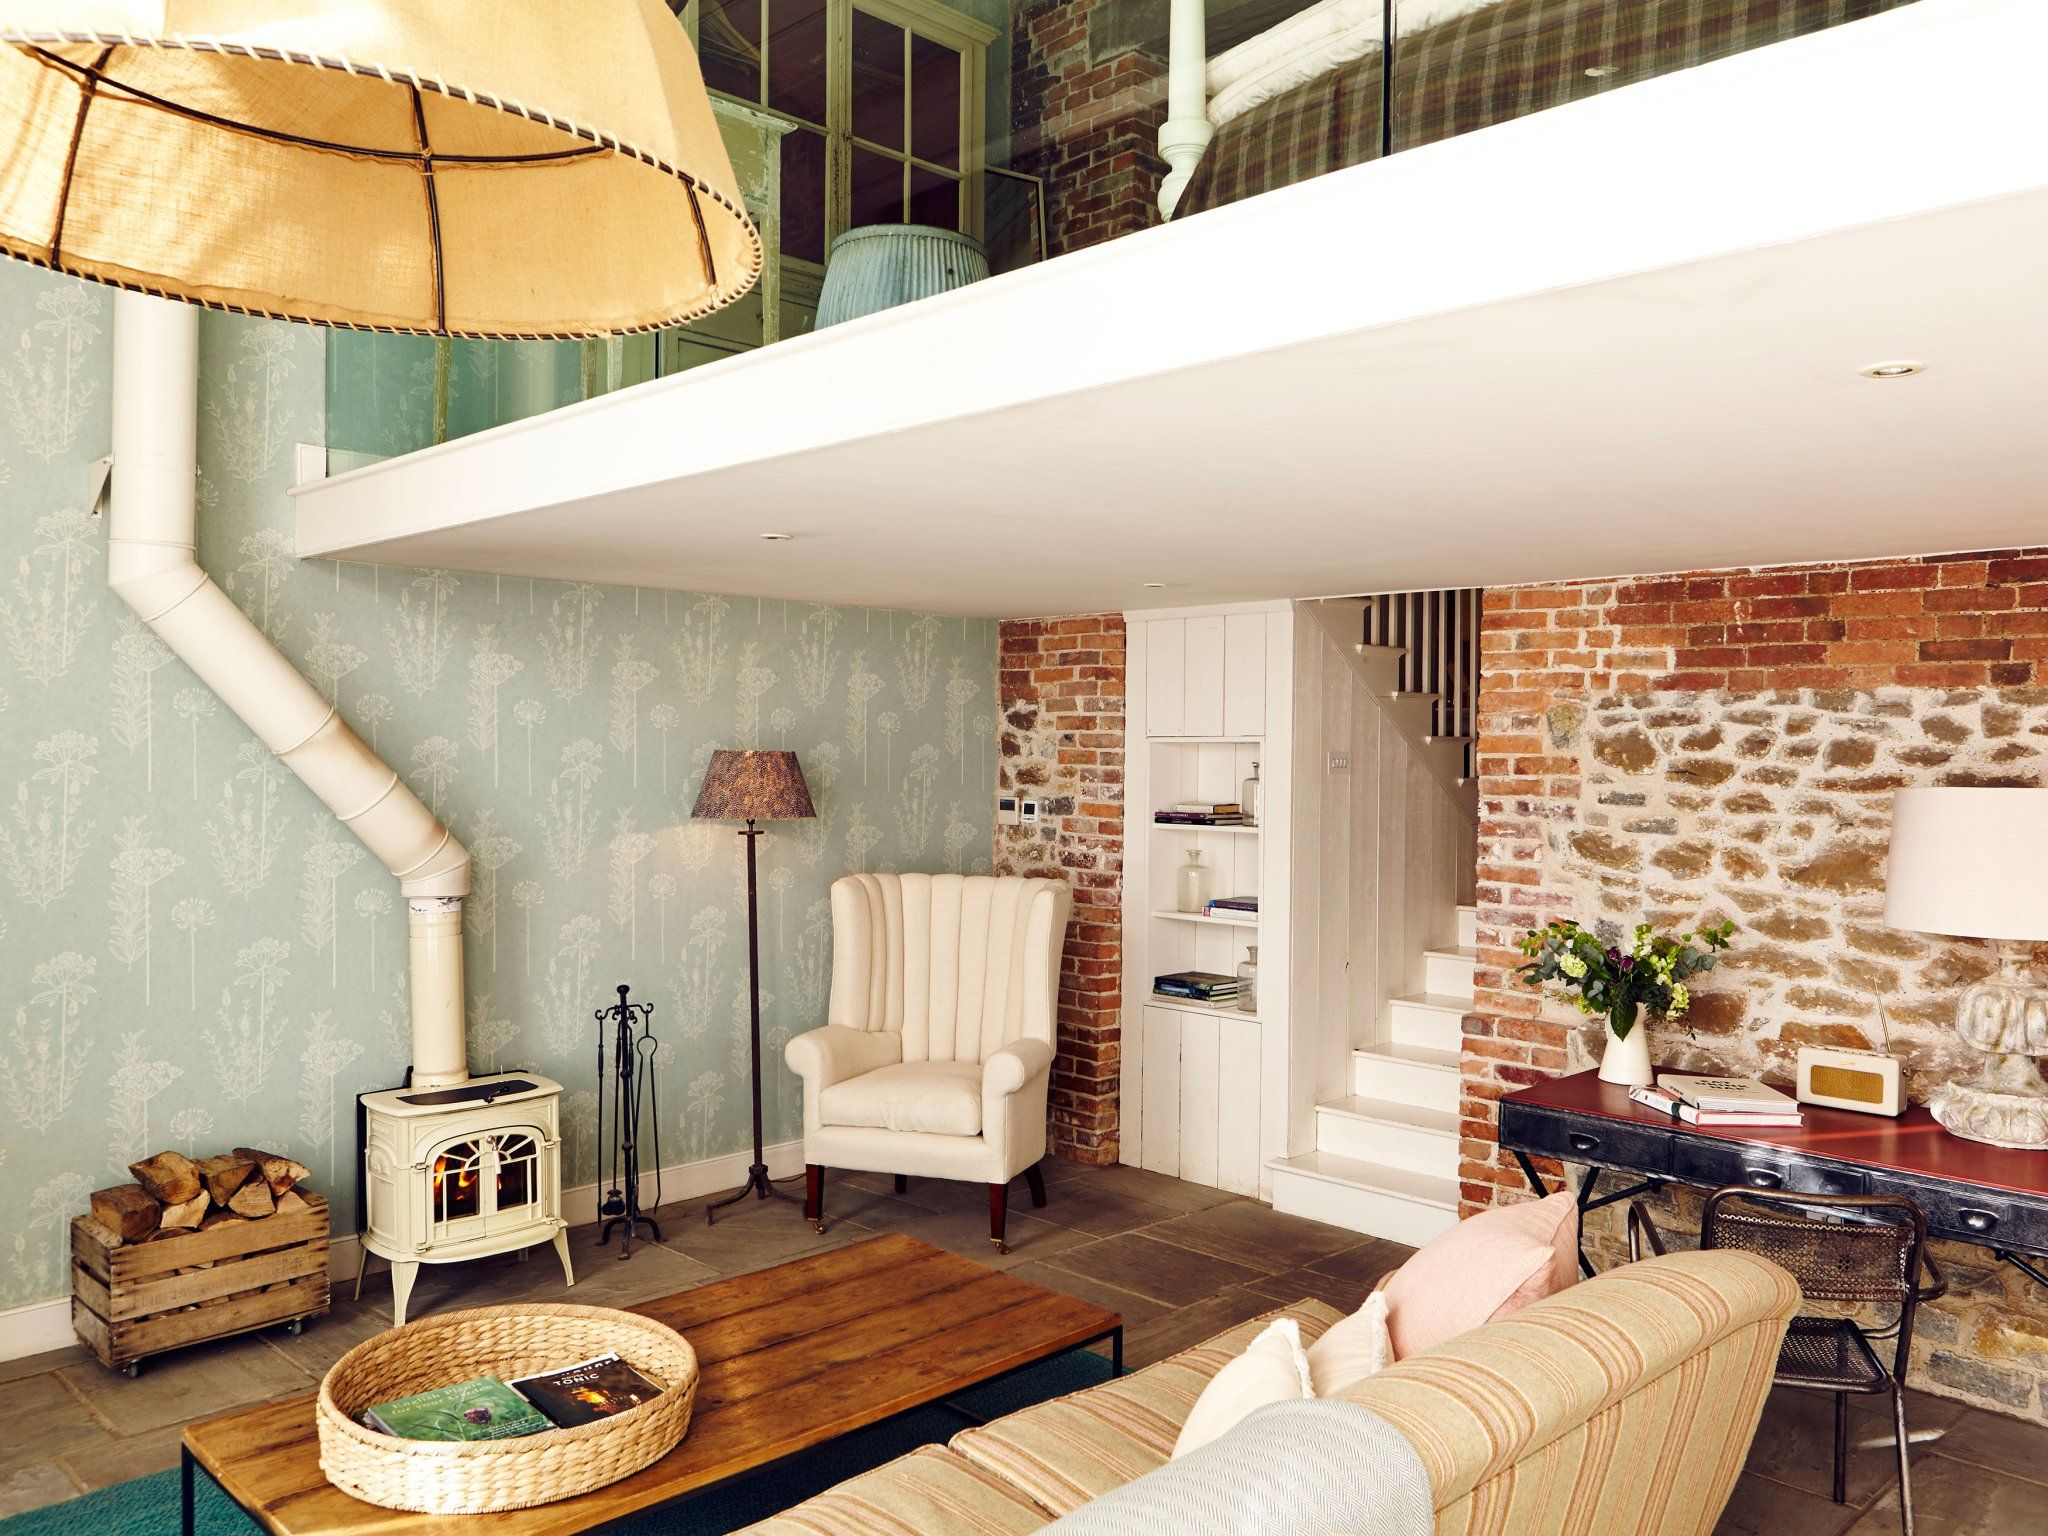 Babbington House Really Like The Exposed Brick Work With The